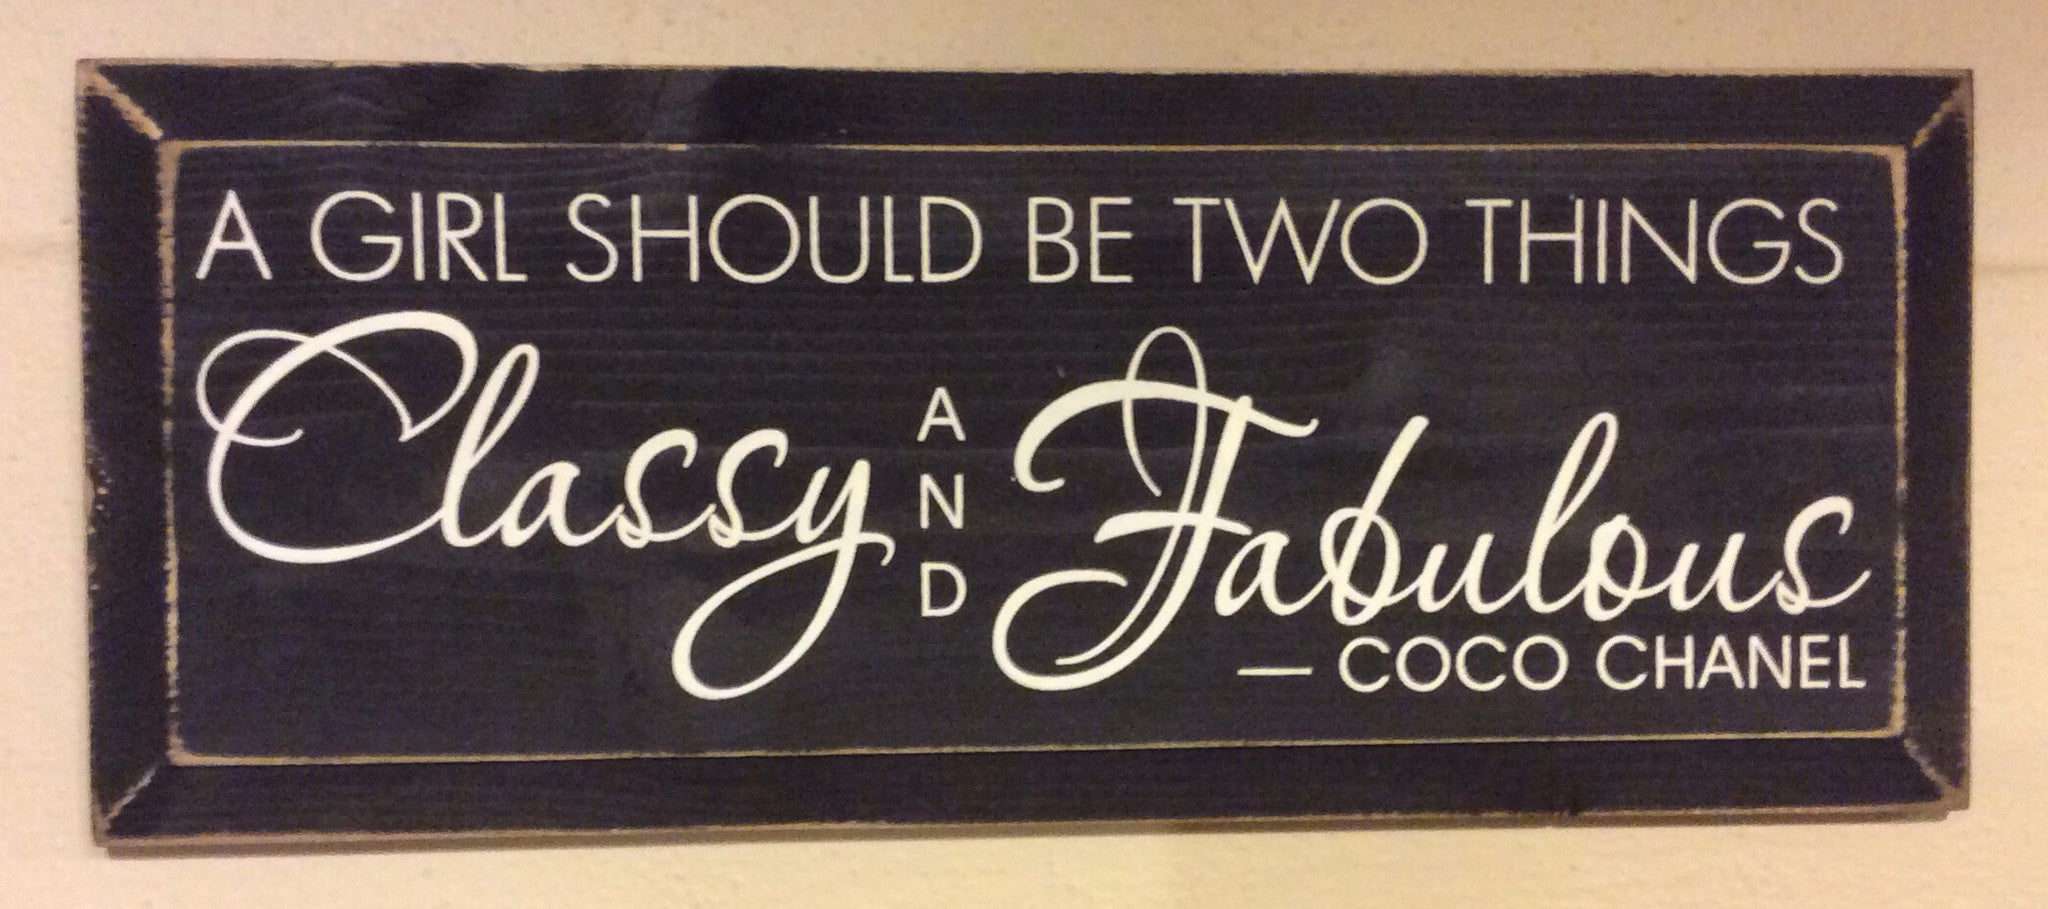 8990405fdc9a A girl should be two things...classy and fabulous. - Coco Chanel - Wood  Sign - Black with Cottage White